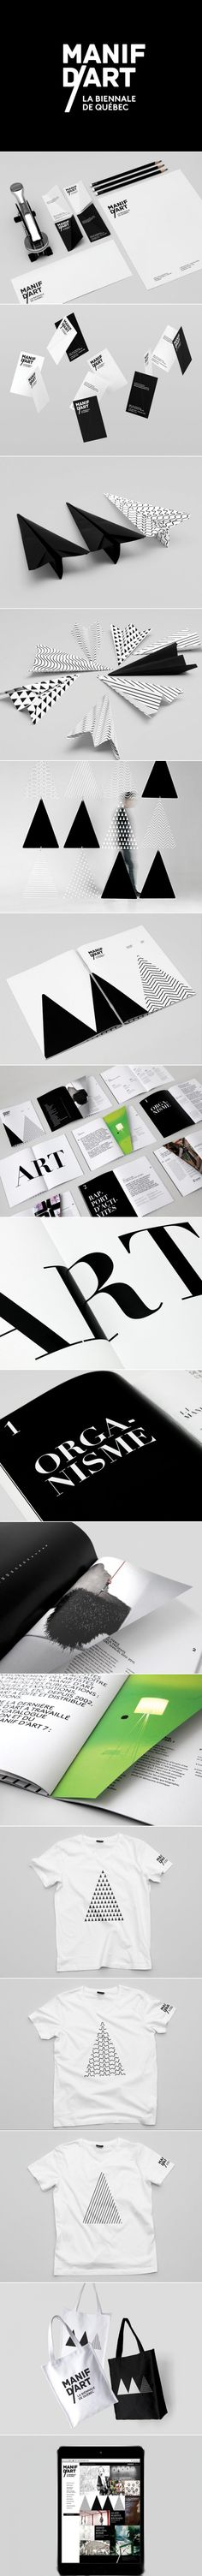 Cool Brand Identity Design on the Internet. Manif D'Art. #branding #brandidentity #identitydesign @ http://www.pinterest.com/alfredchong/brand-identity/